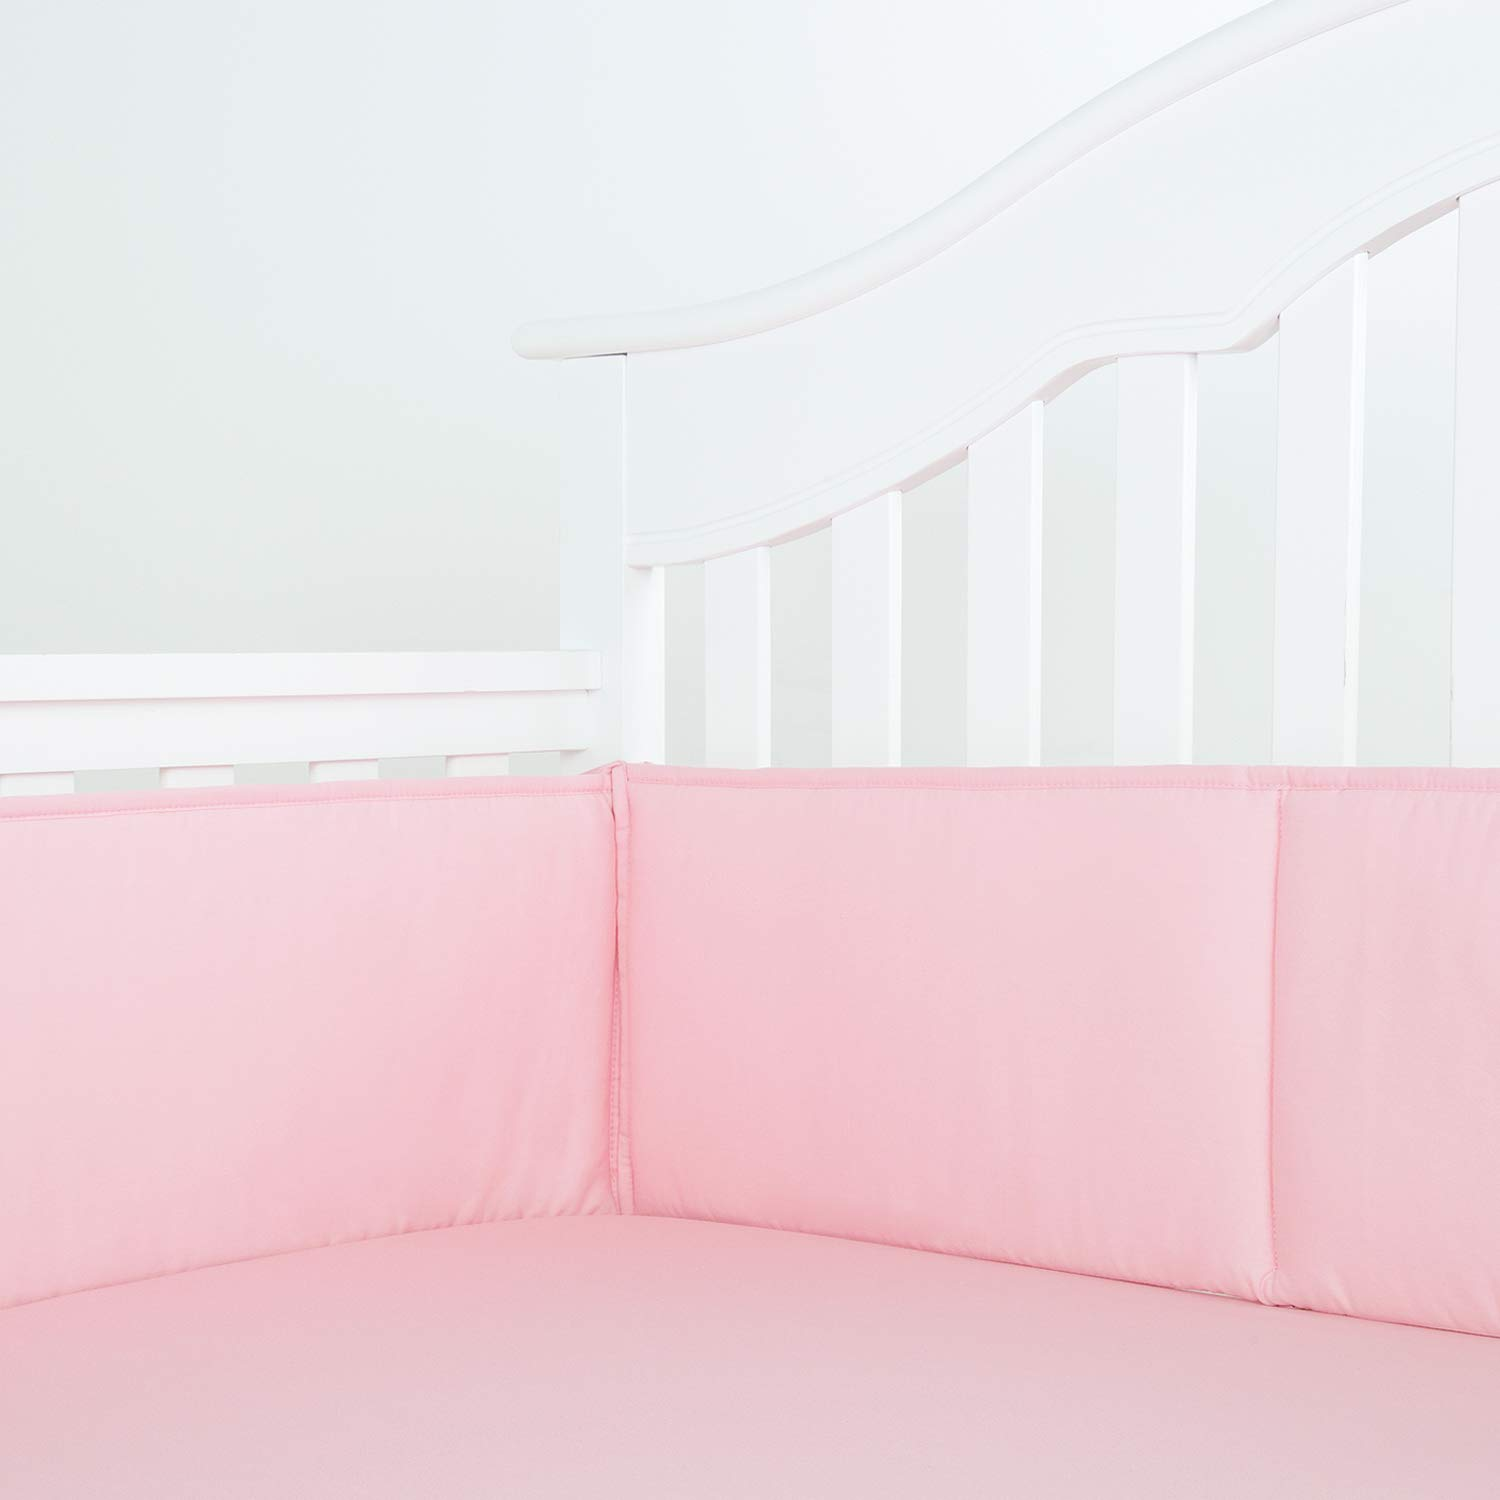 TILLYOU Cotton Collection Nursery Crib Bumper Pads for Standard Cribs Machine Washable Padded Crib Liner Set for Baby Girls Safe Bumper Guards Protector de Cuna Thick Rail Padding, 4 Piece, Lt Pink by TILLYOU